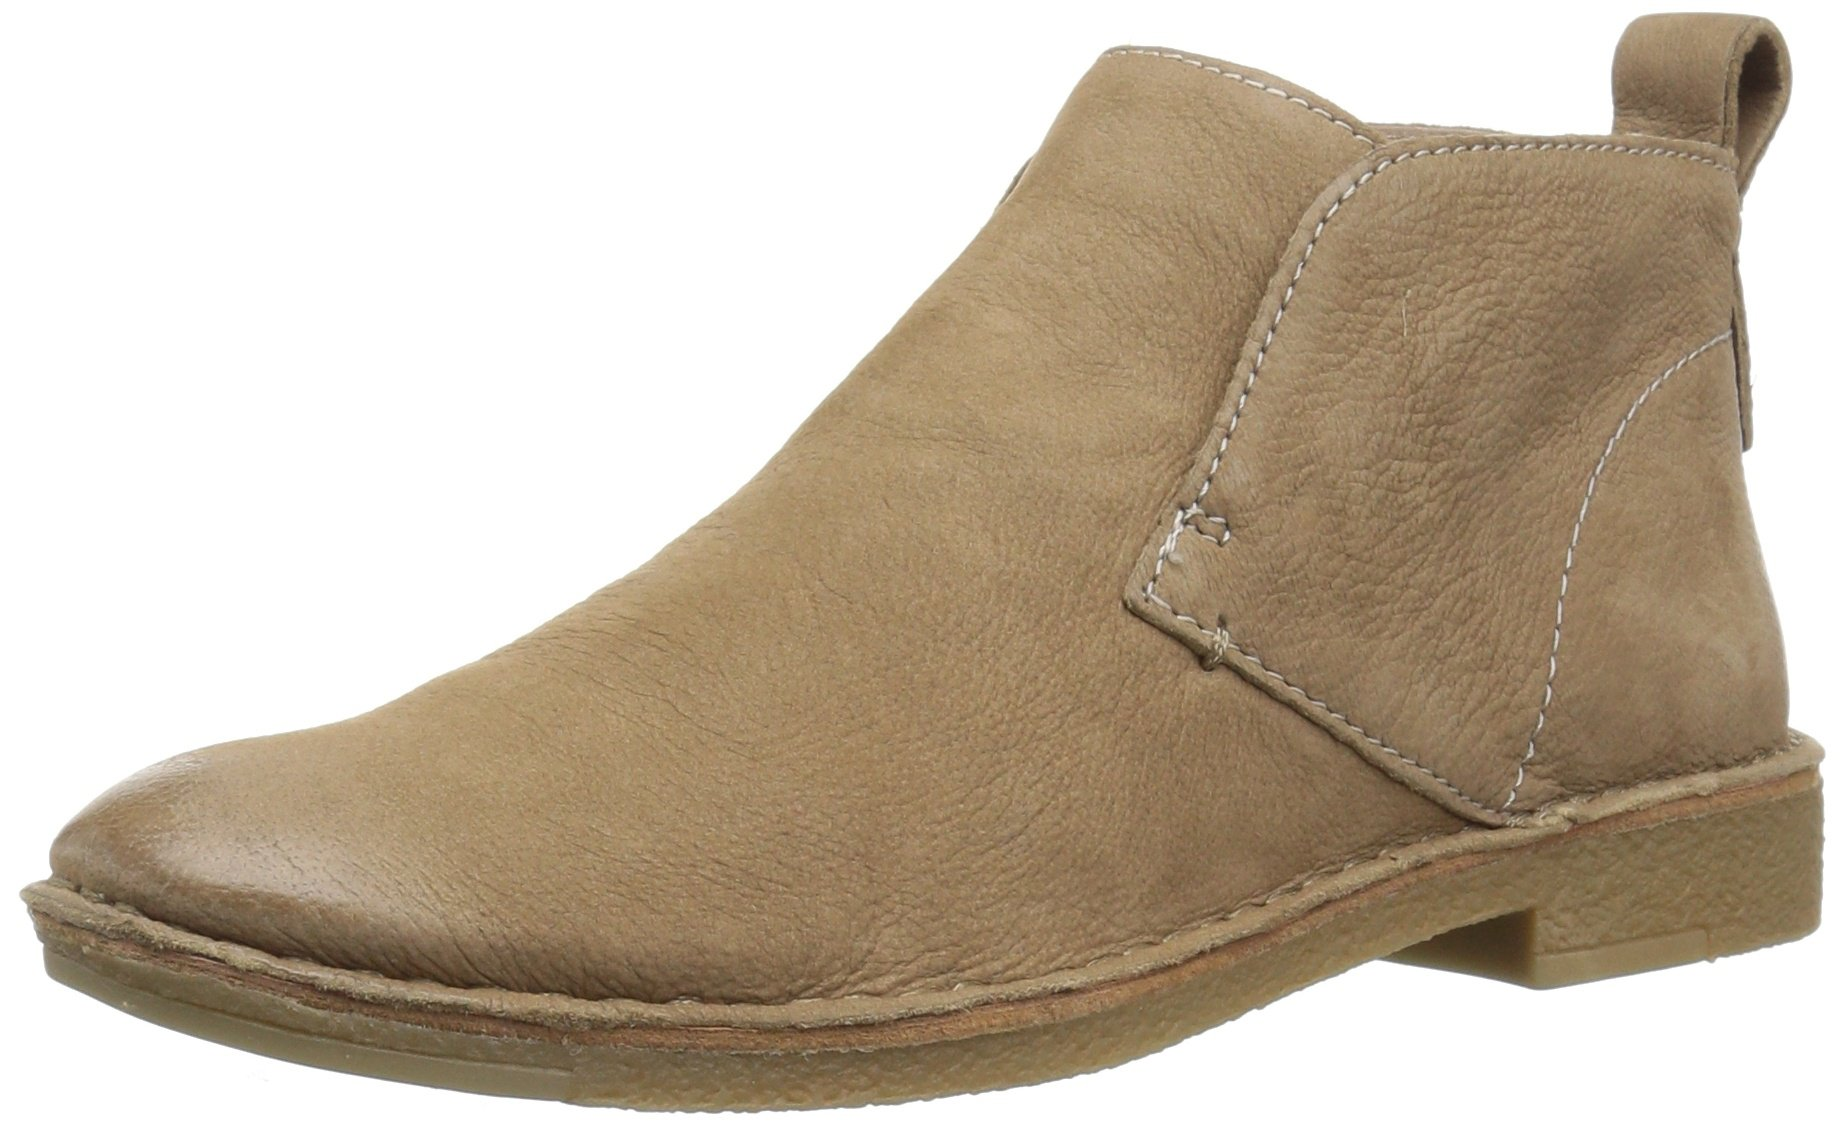 Dolce Vita Women's Findley Boot,Taupe,8.5 M US